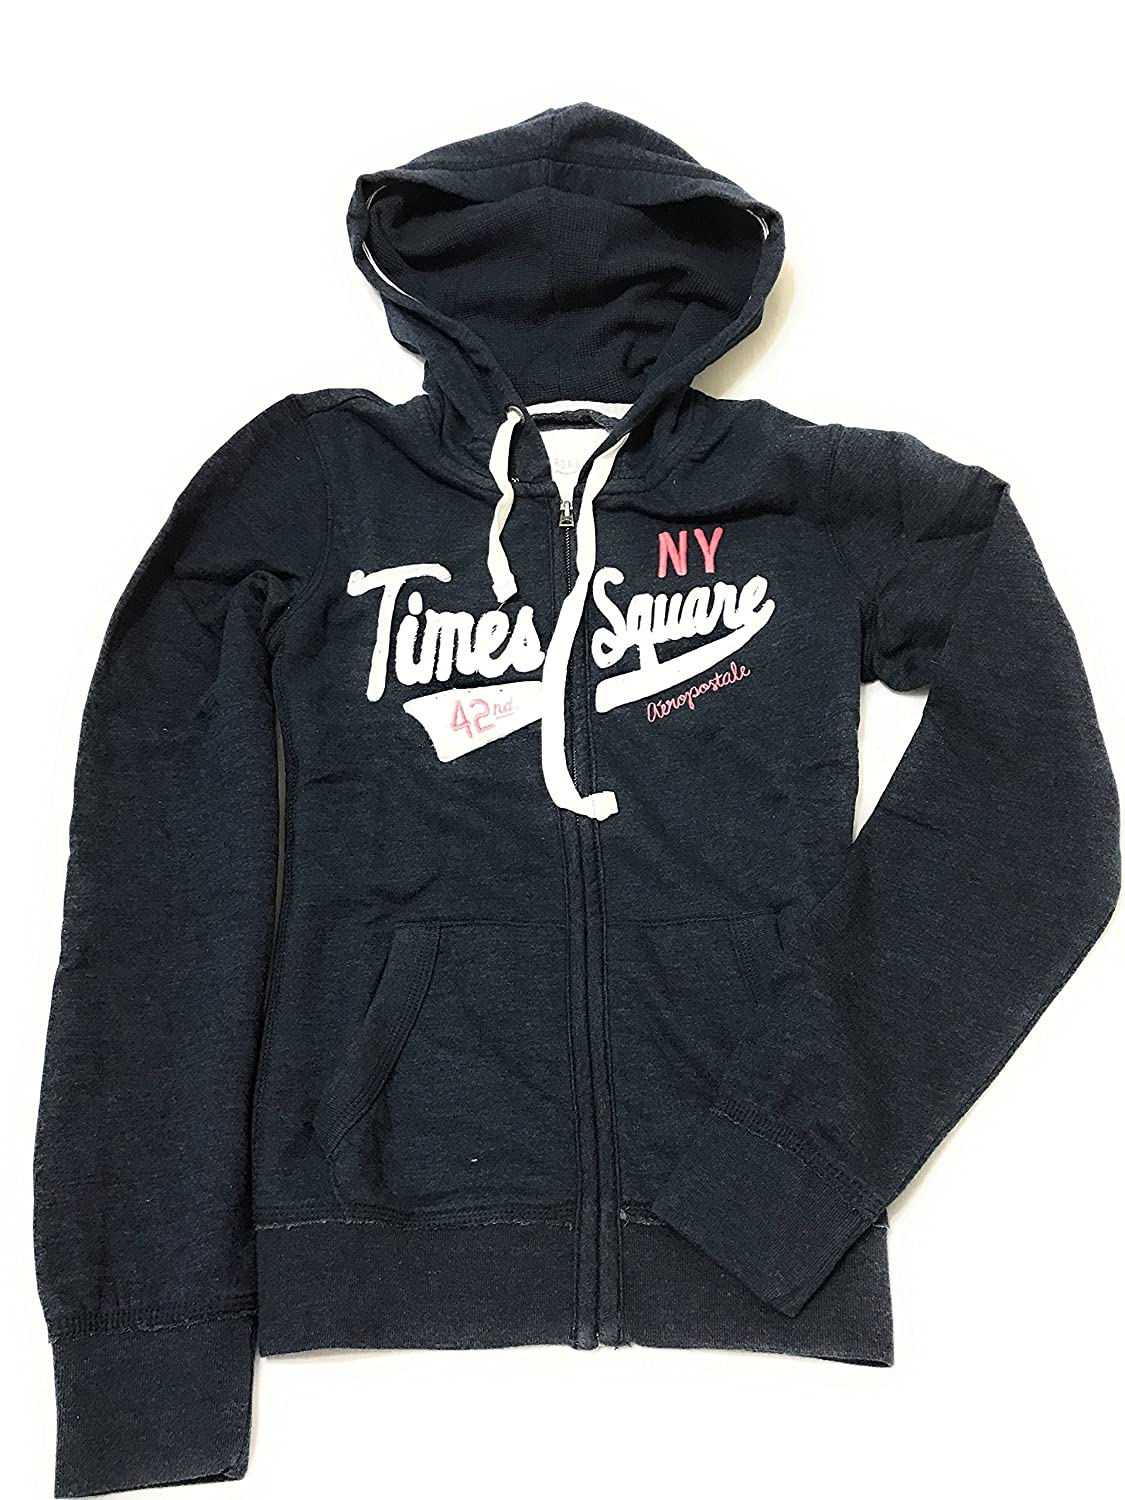 Aeropostale Women Pullover Hoodie With Logo Time Square 42nd St Style 2343